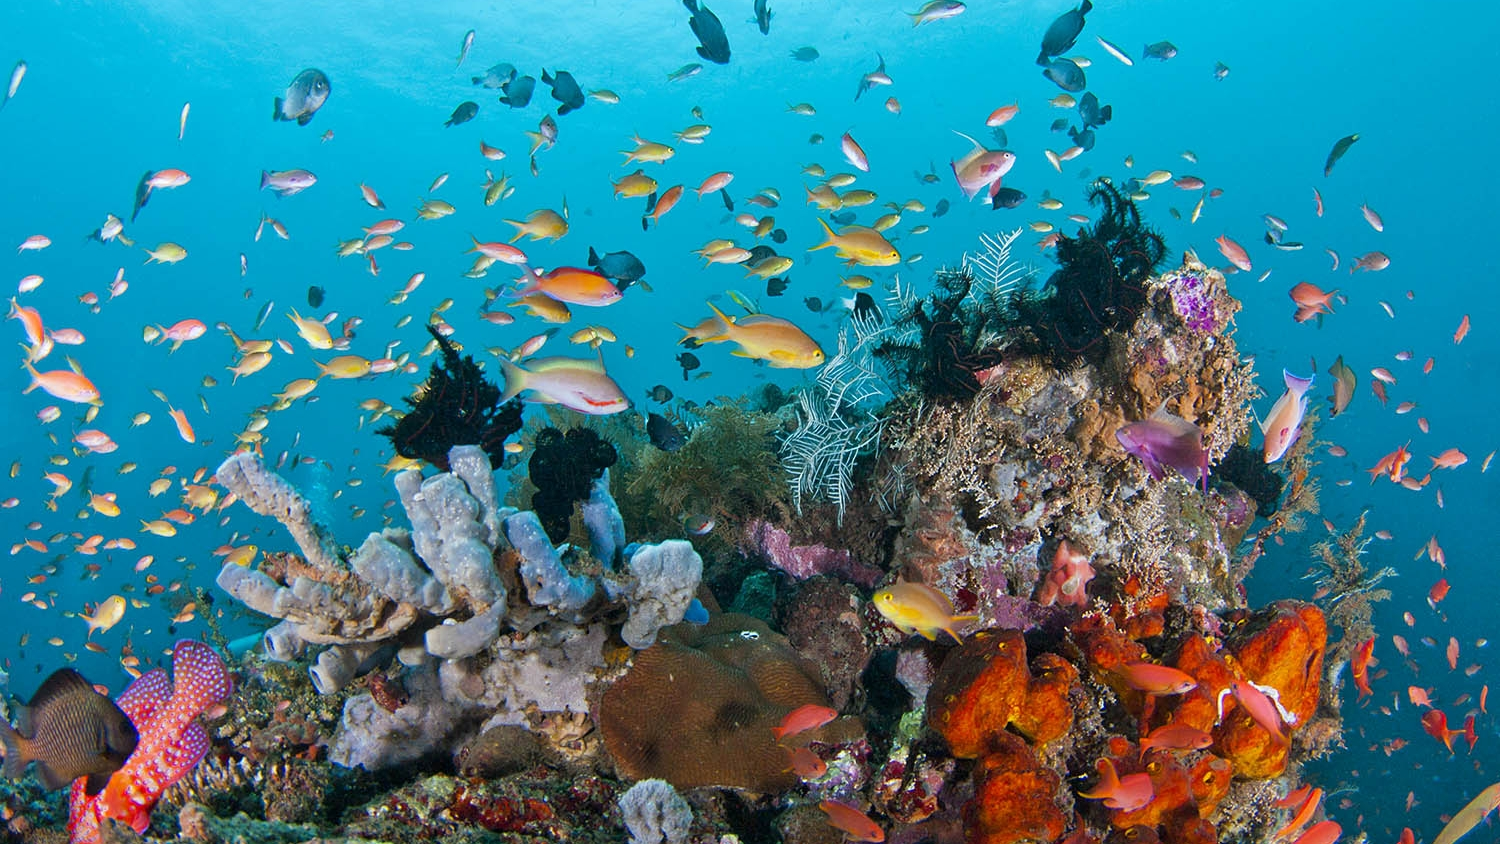 Amazing Batu Bolong - Batu Bolong is a world class dive site ranked amongst the top 10 best dive site in the world. Batu Bolong is a volcanic chimney rising up from the depth of the straight between Komodo Island and Rinca Island where strong currents hit the rock on one side or the other depending of the tide. Thanks to the currents, Batu Bolong is home to one of the most impressive dive you can do in Komodo National Park. Huge numbers of fish, sharks, turtles, moray eel, lobsters and many more have to be observed in this amazing spot. No need to dive deep as snorkelers will feel like they are into an aquarium full of tropical fish even at the surface.